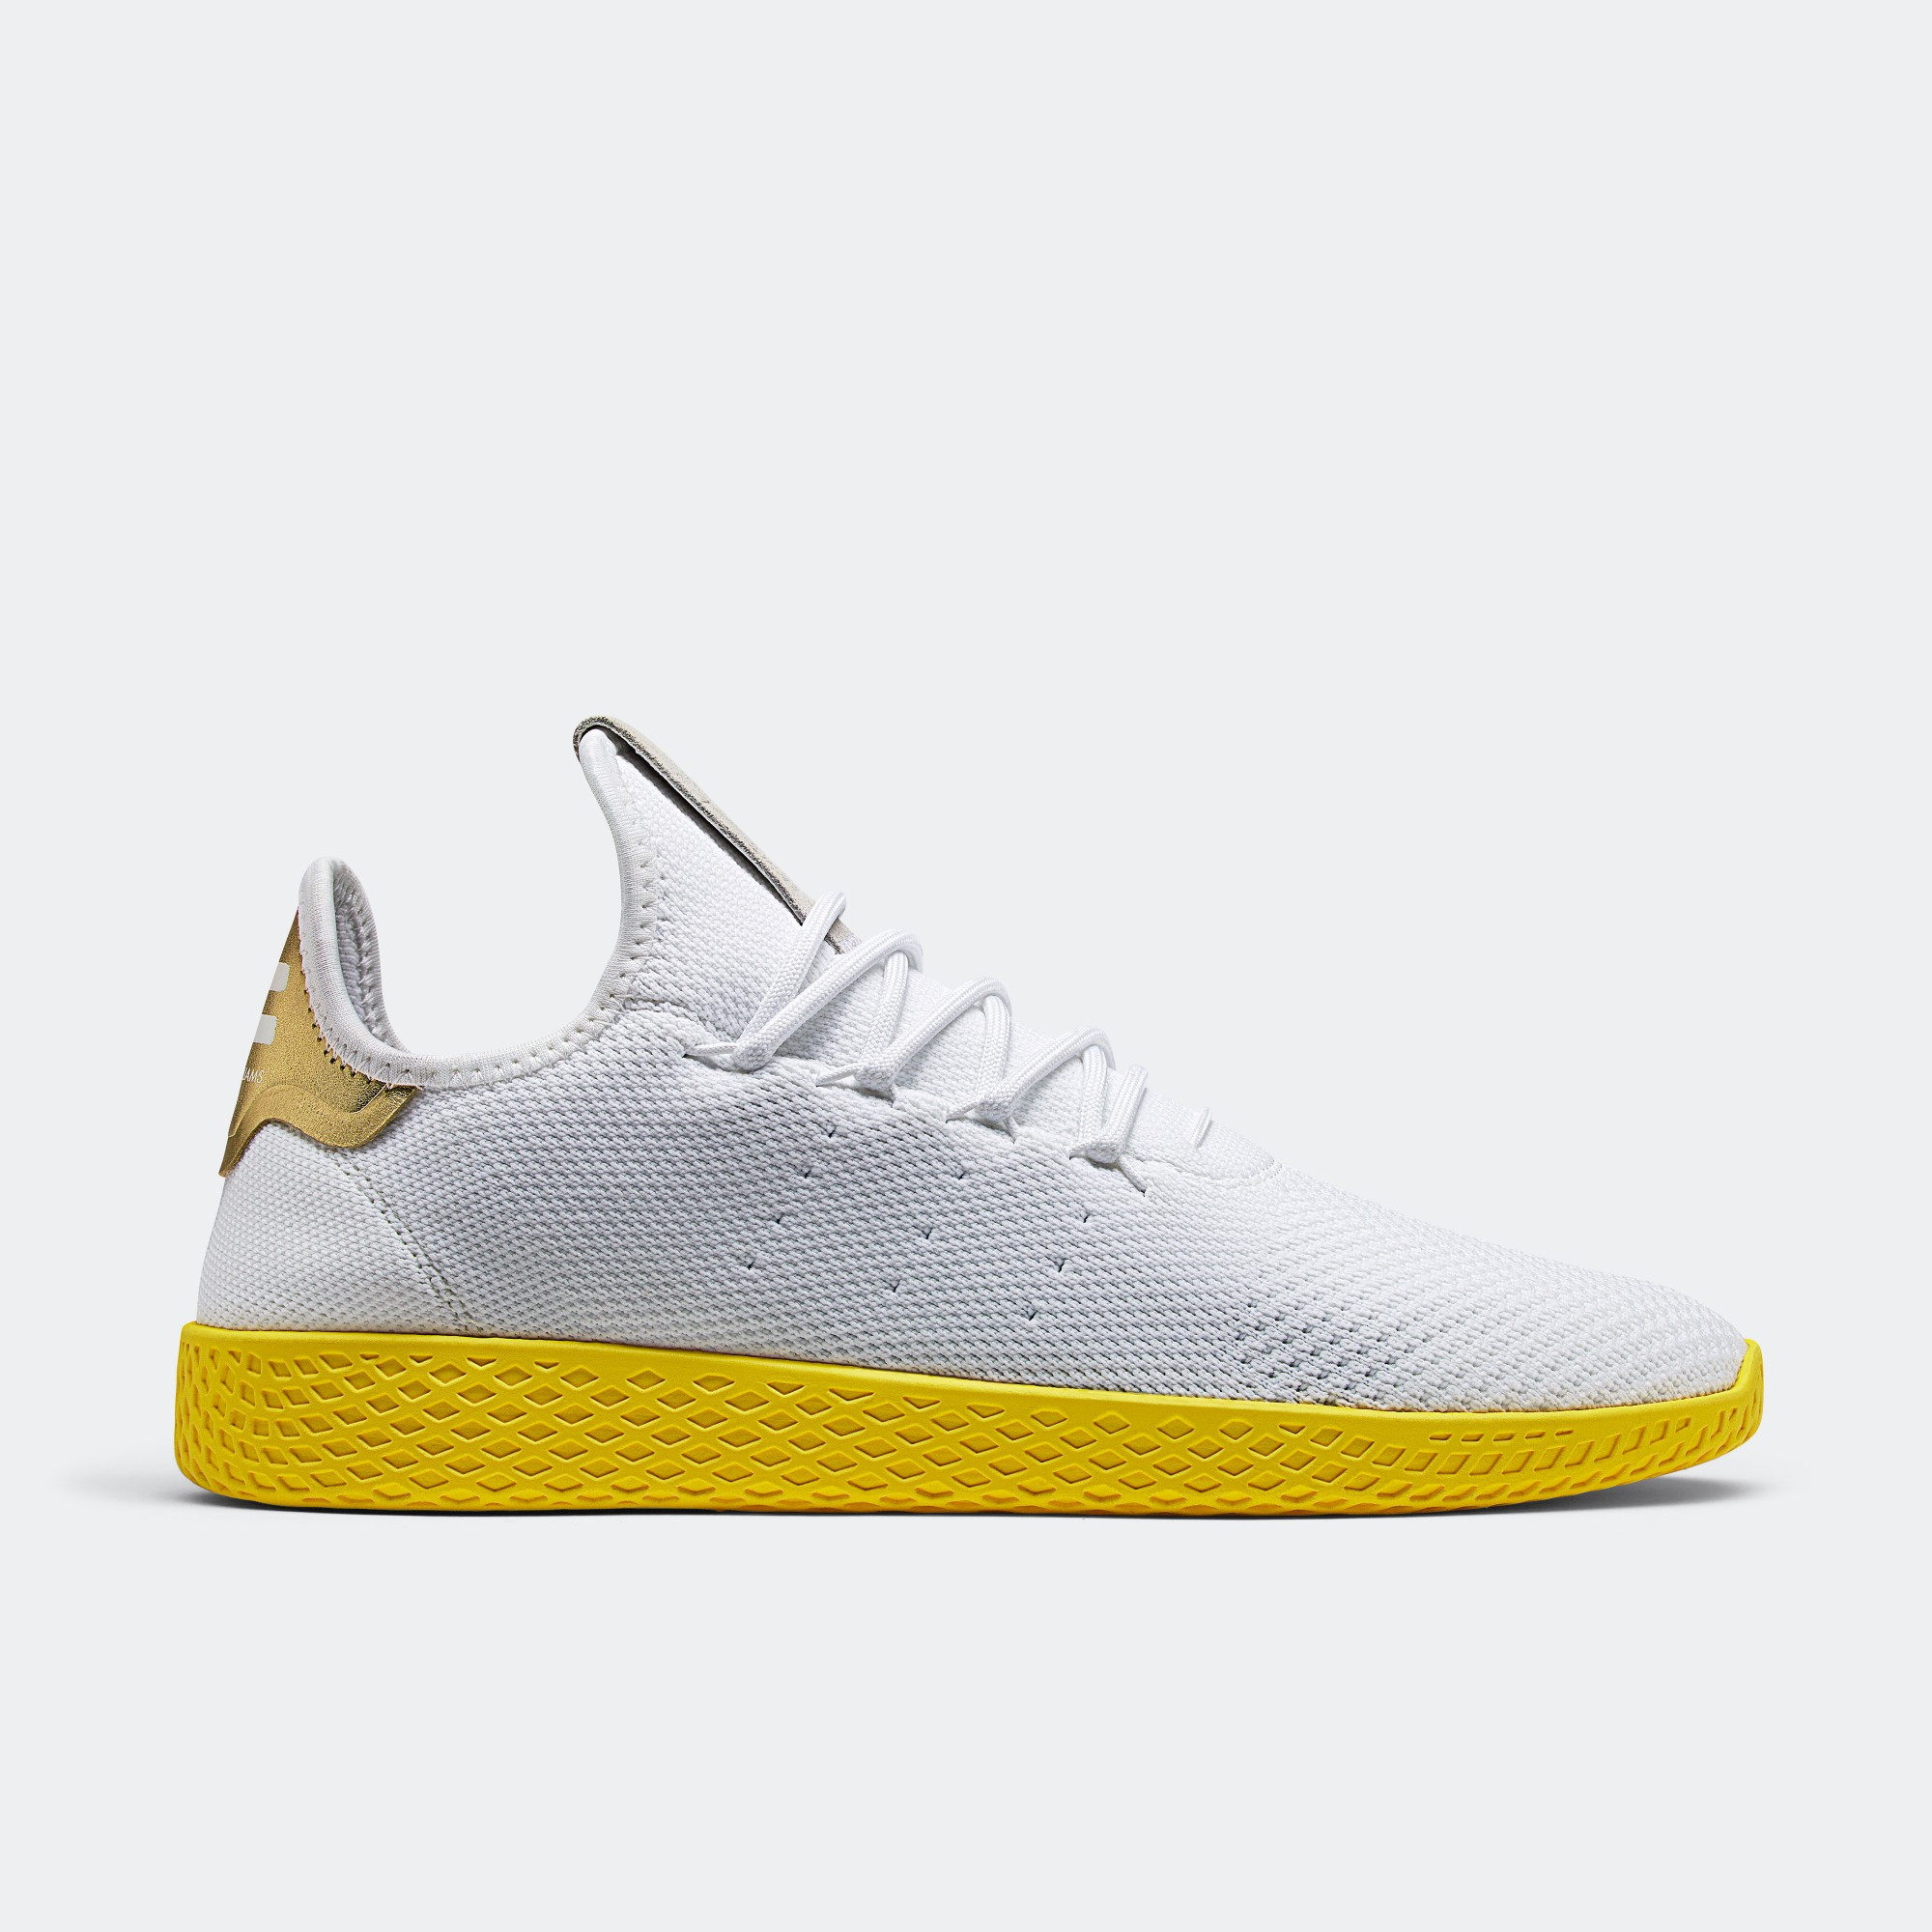 5373603c6a945 PHARELL WILLIAMS x ADIDAS ORIGINALS